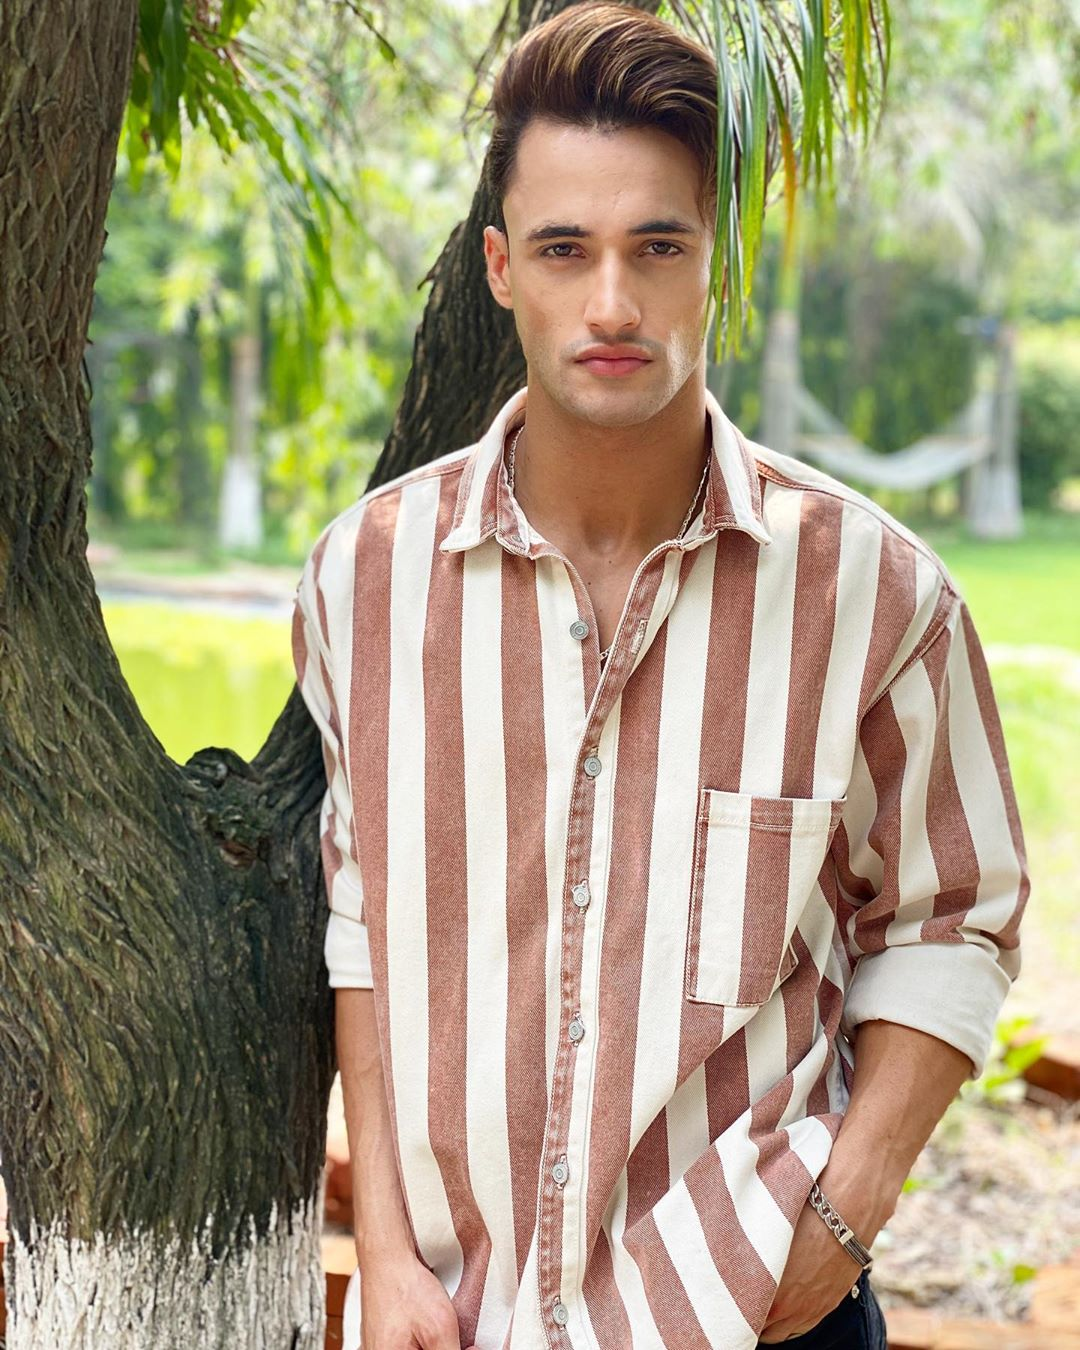 Asim Riaz Photos [HD]: Latest Images, Wallpapers, Pictures, Model, & Actor